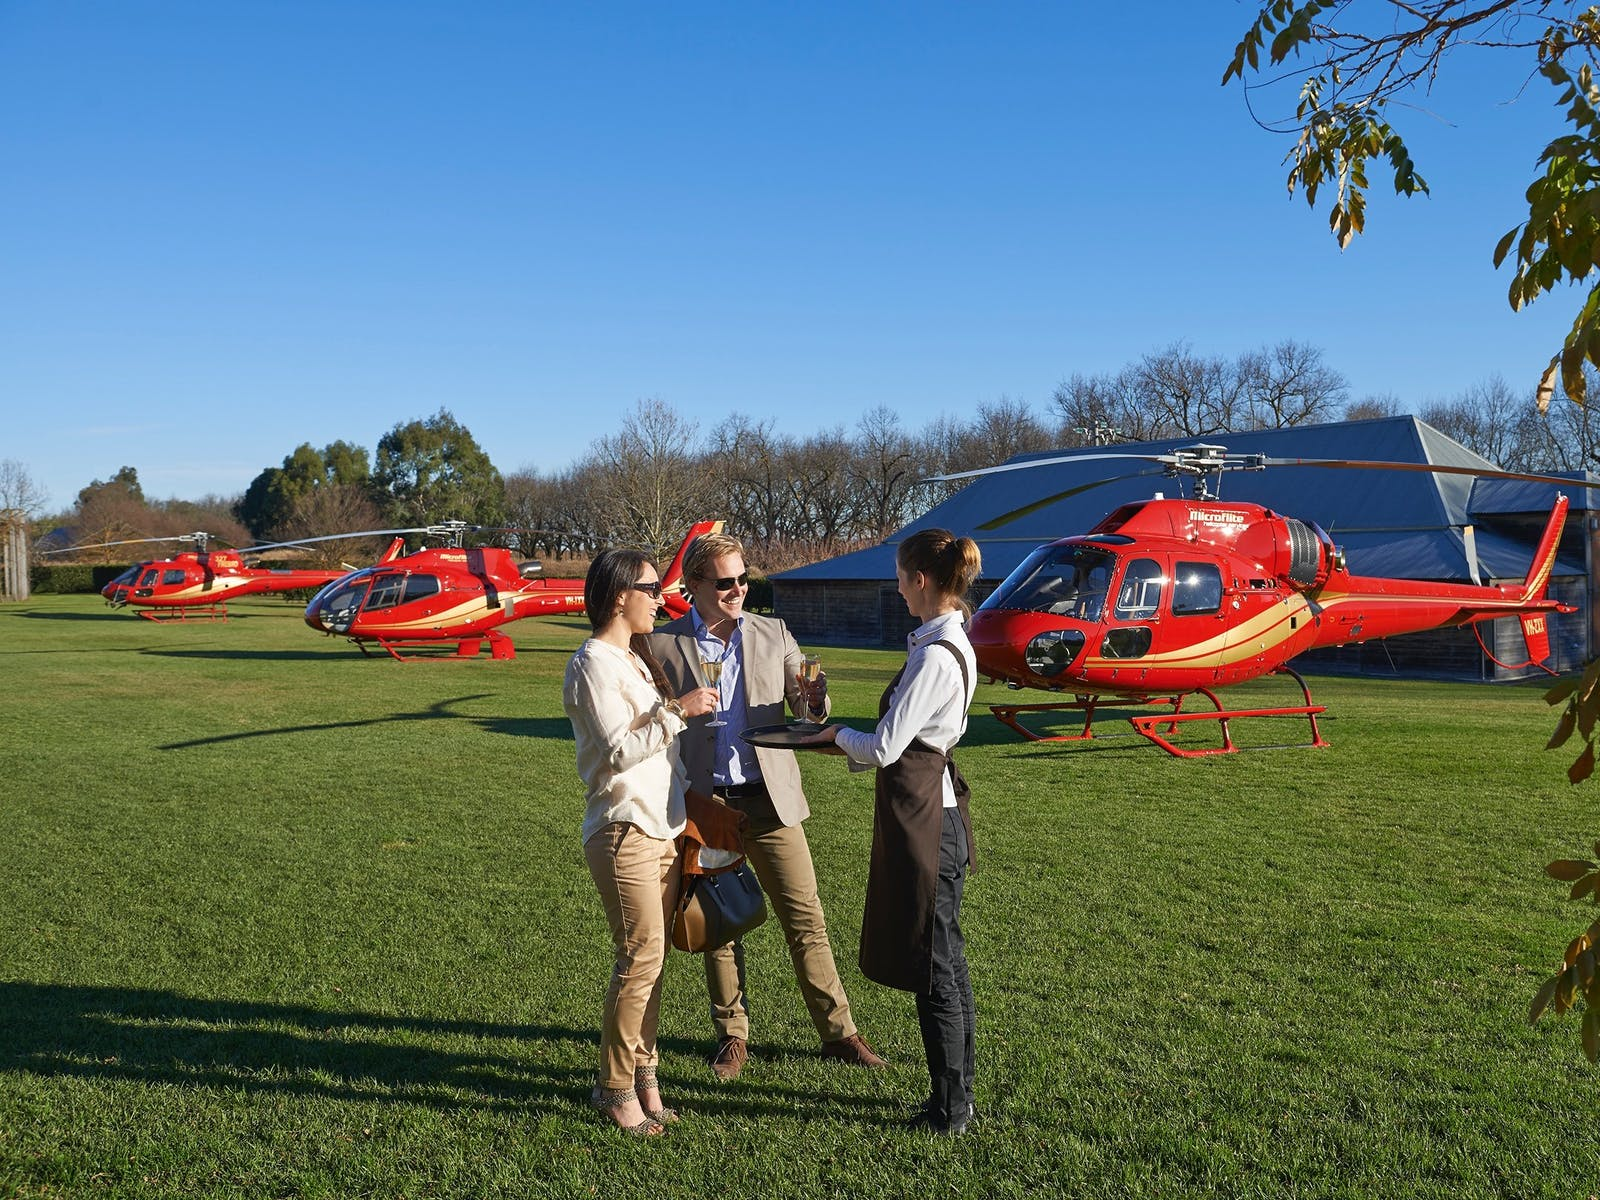 yarra valley helicopter with Ballooning And Scenic Flights on 12 Apostles Helicopter Or Aeroplane 2 moreover Ballooning And Scenic Flights as well Ballooning And Scenic Flights further Magistic  7c Christmas Day Lunch Cruise besides Helicopter Wine And Food Tours.